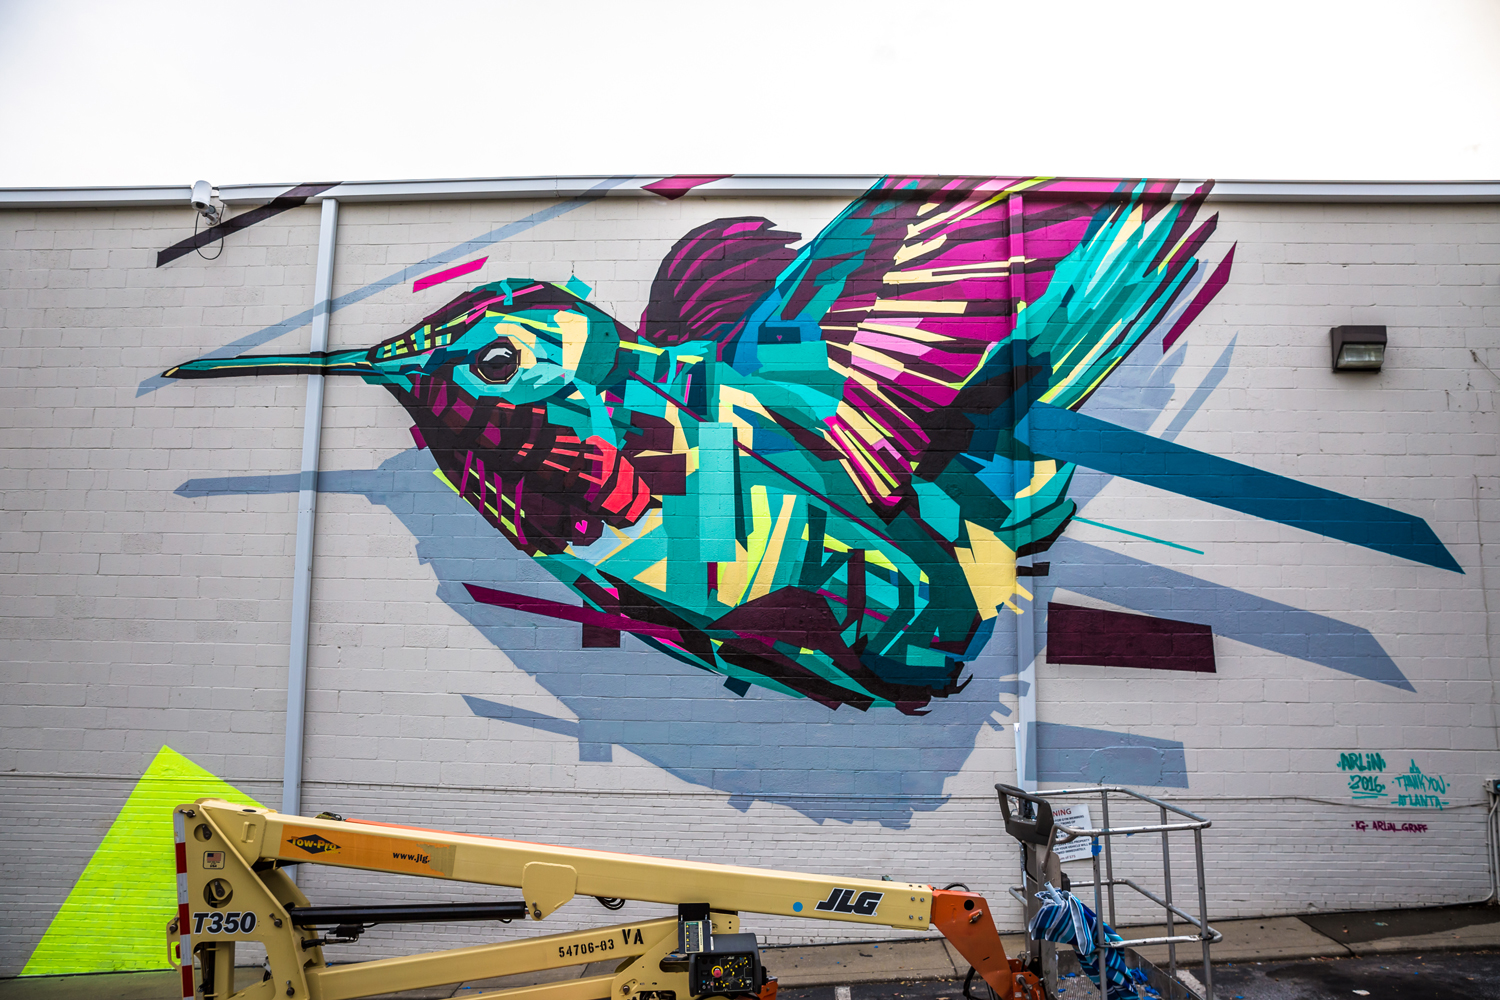 Graffiti art animals - These Days Graff Travels The World Decorating Outdoor Spaces With His Unique Visions Seemingly Ripped From A Mystical Jungle Filled With Animals